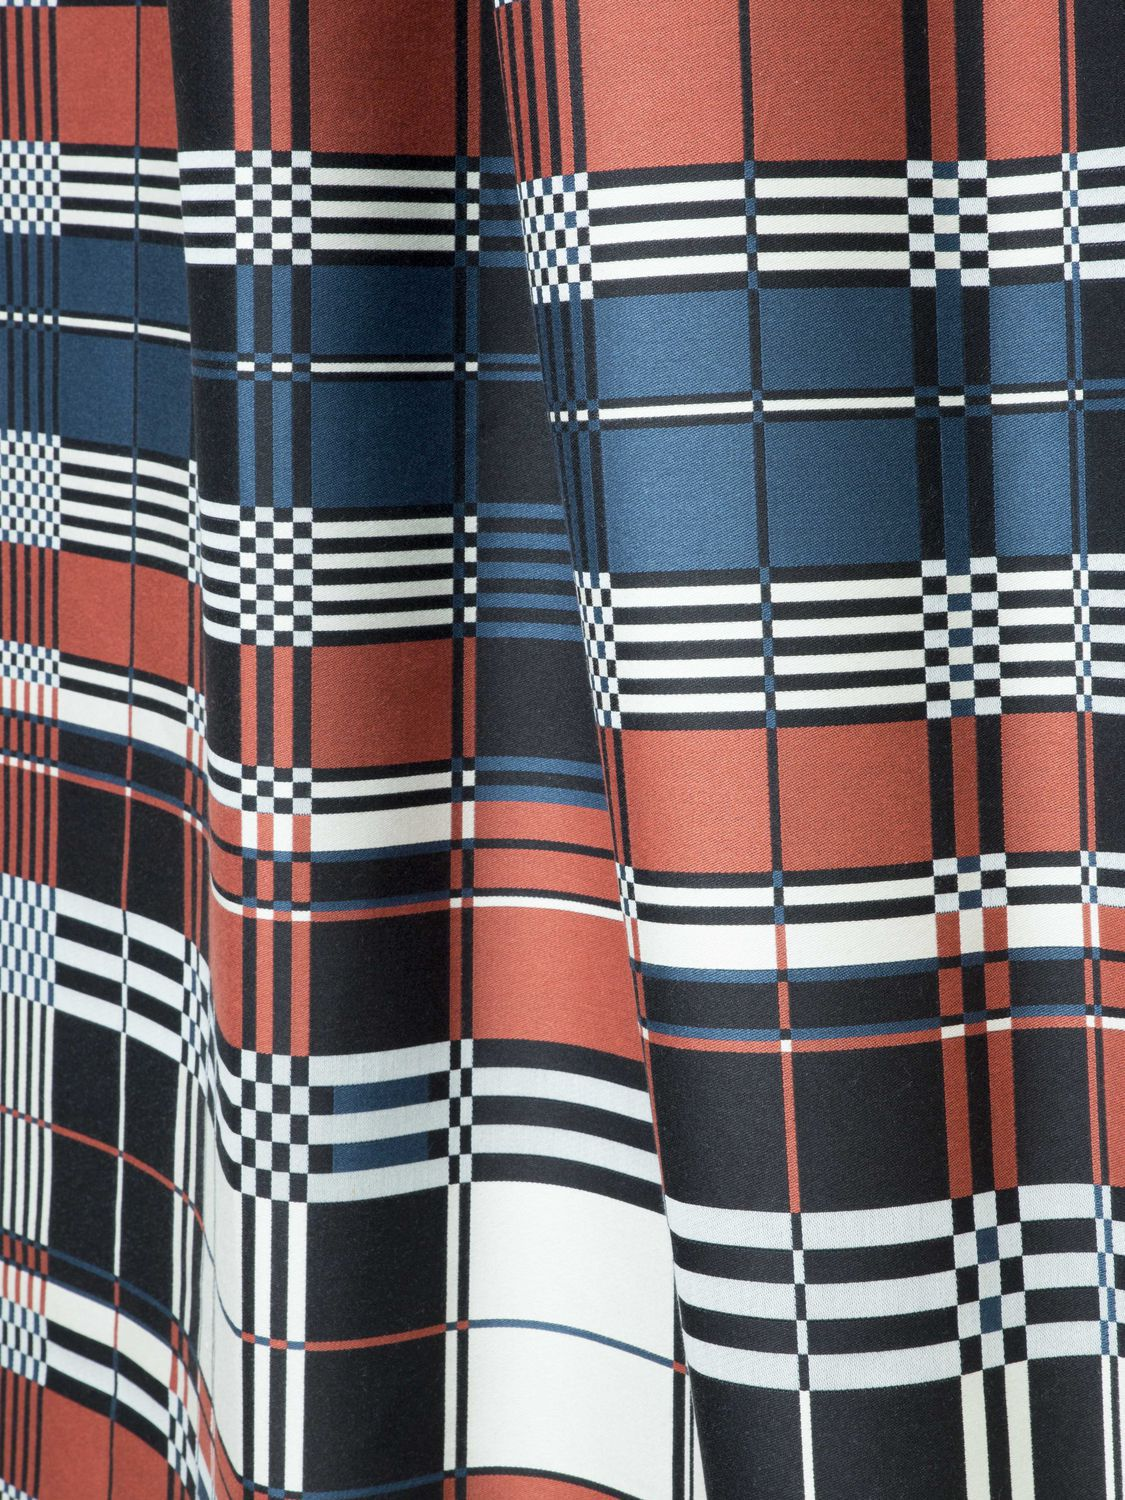 Tissu Jean Paul Gaultier wall fabric / for curtains / upholstery / plaid - nature et